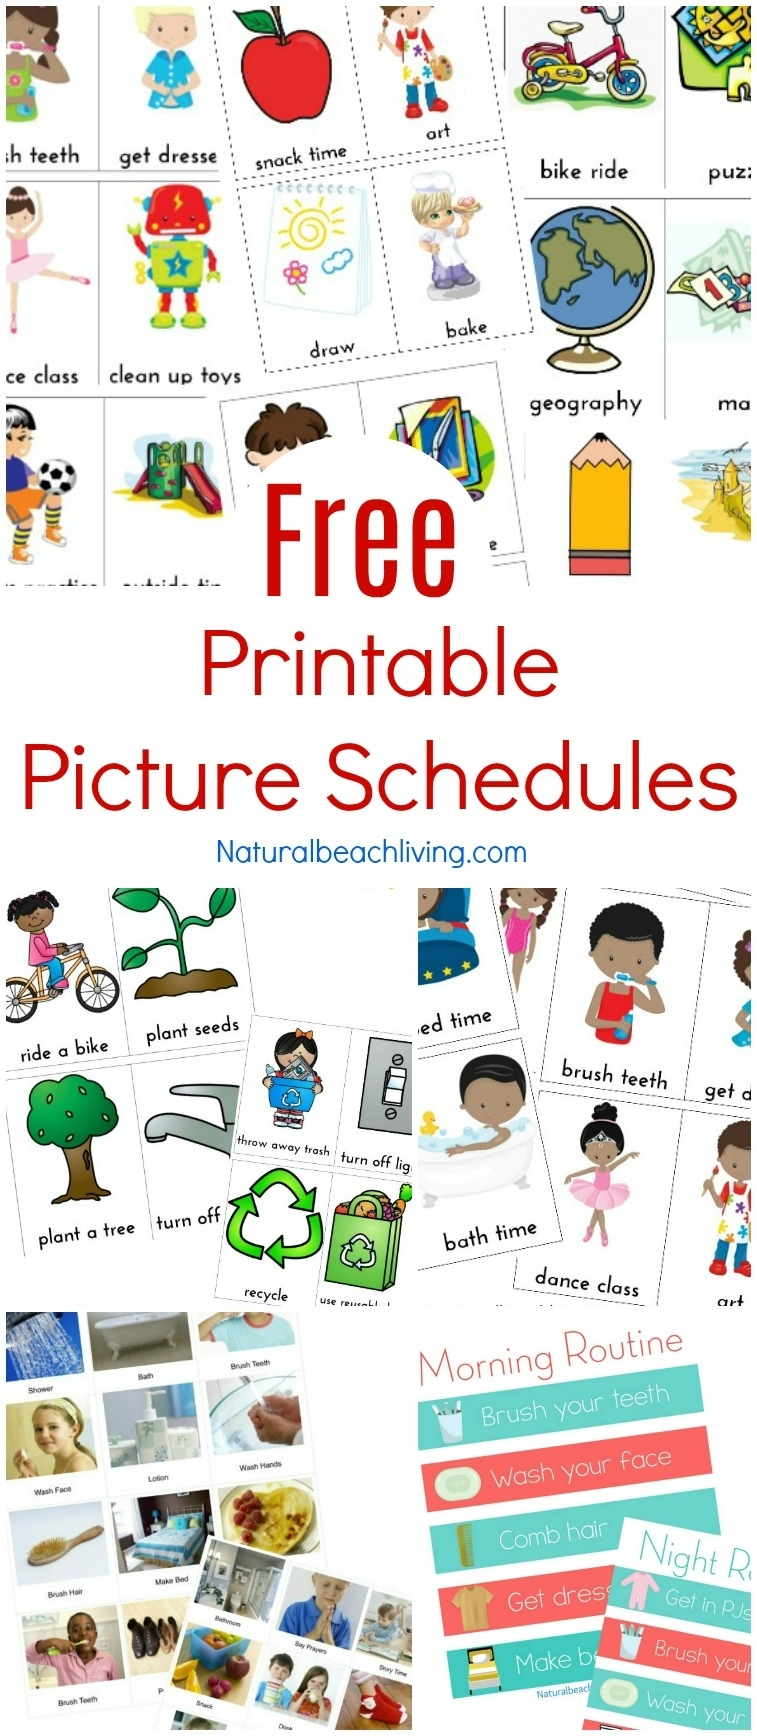 Free Printable Picture Schedule Cards - Visual Schedule Printables with Free Printable Picture Schedules For Children